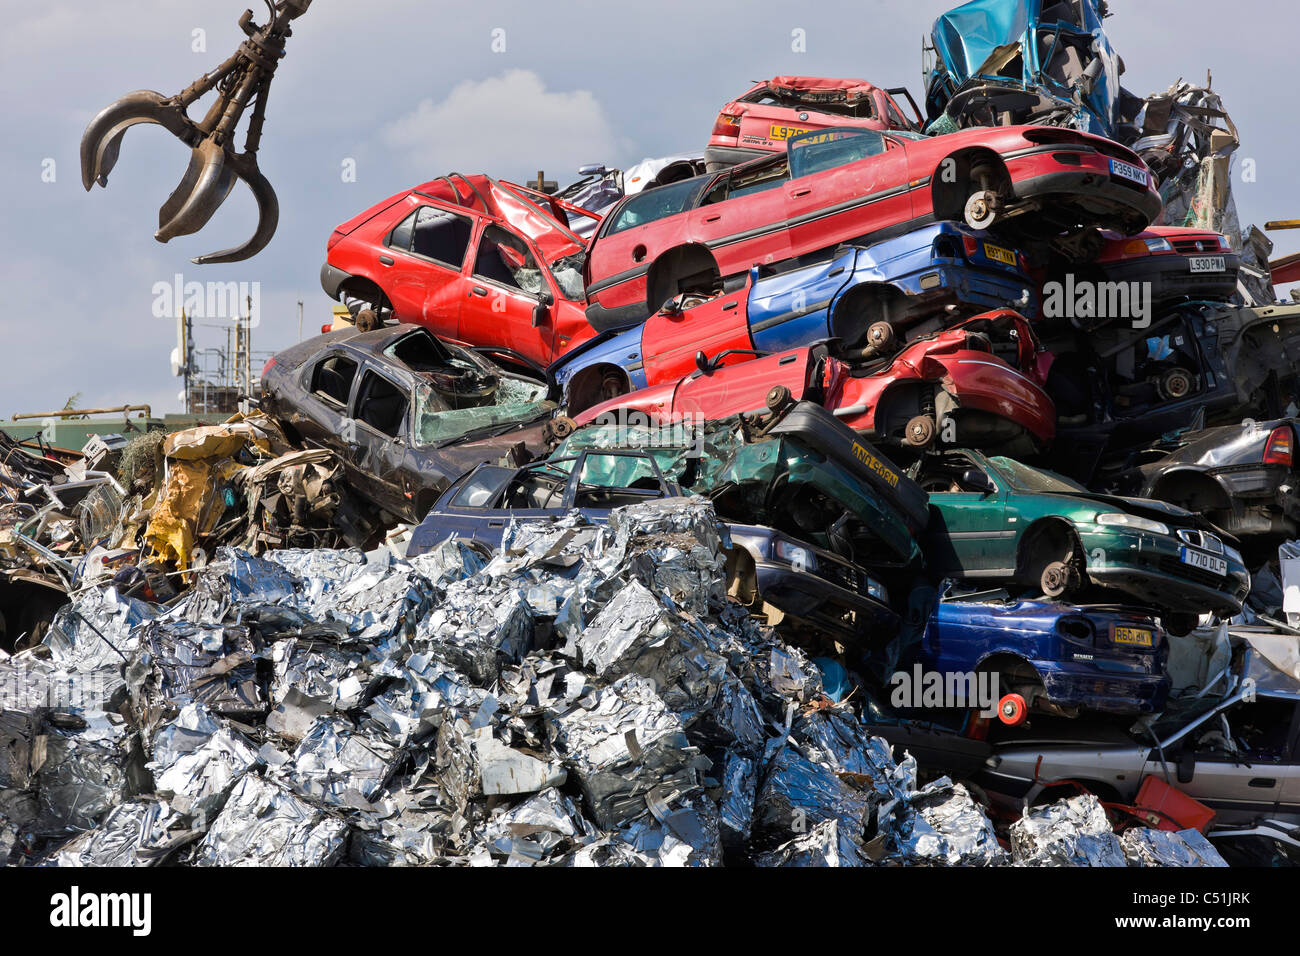 Unwanted old cars scrapped and crushed into cubes at recycling ...